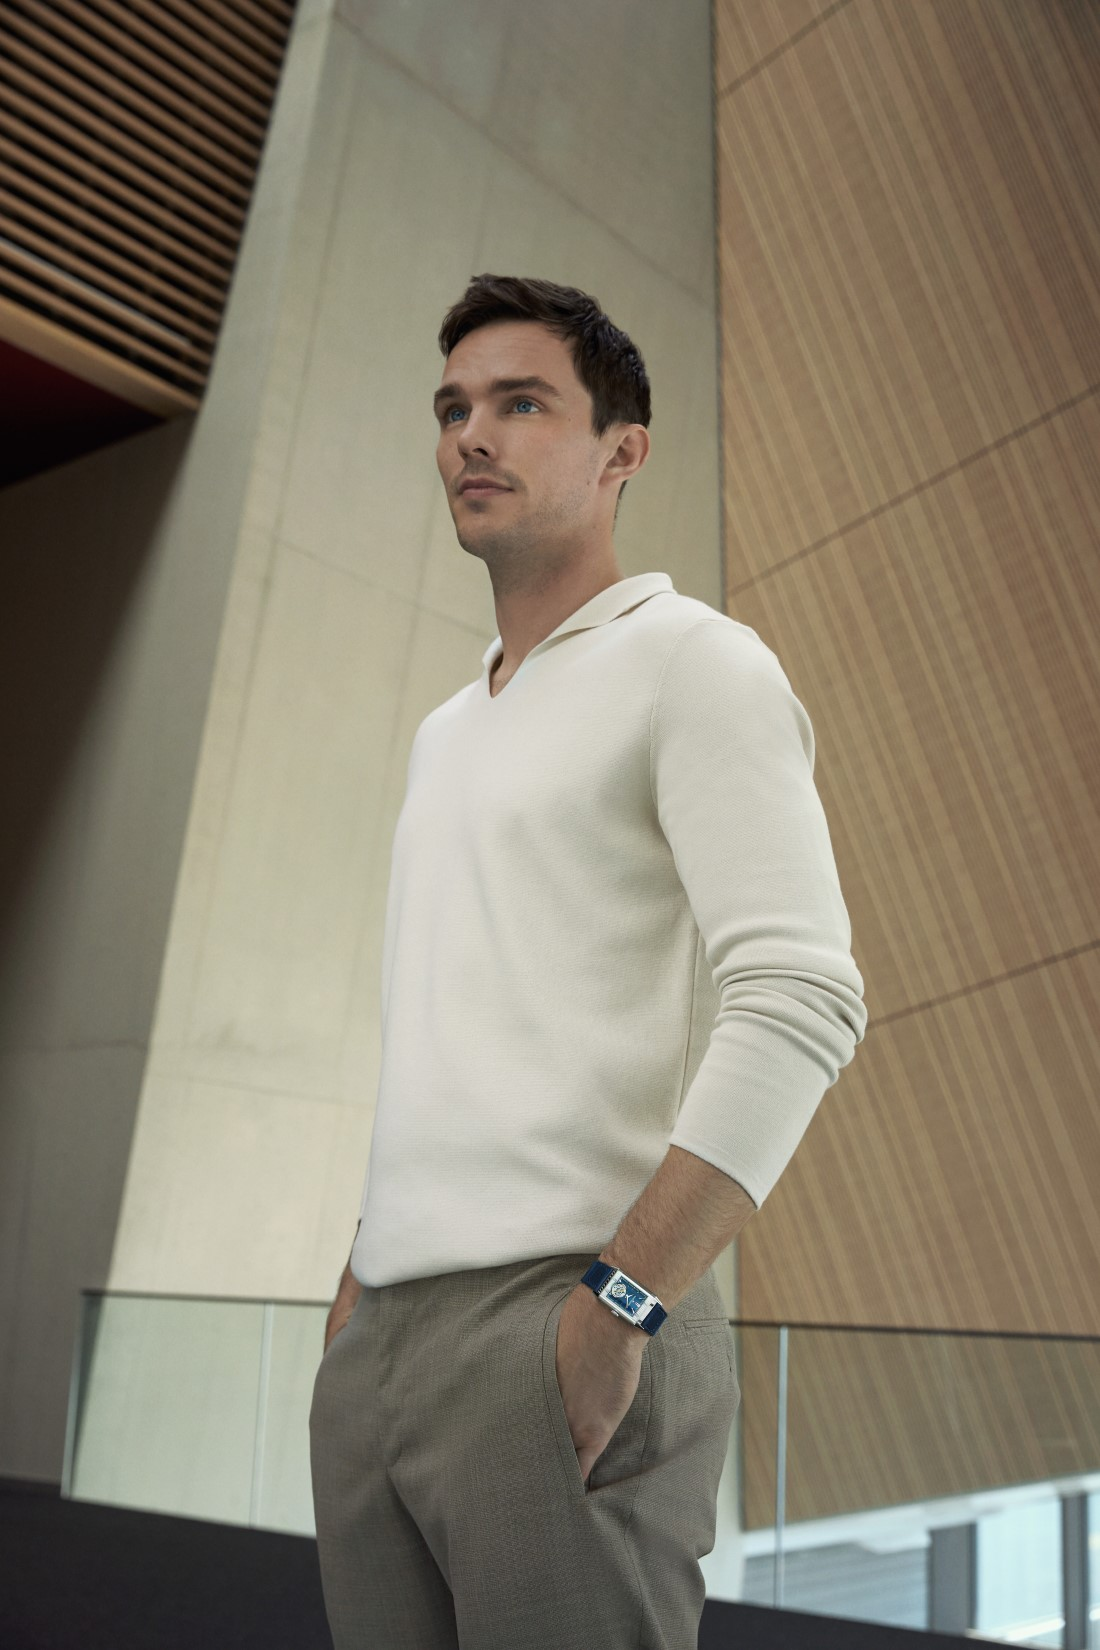 Jaeger-LeCoultre x Nicholas Hoult - The Turning Point